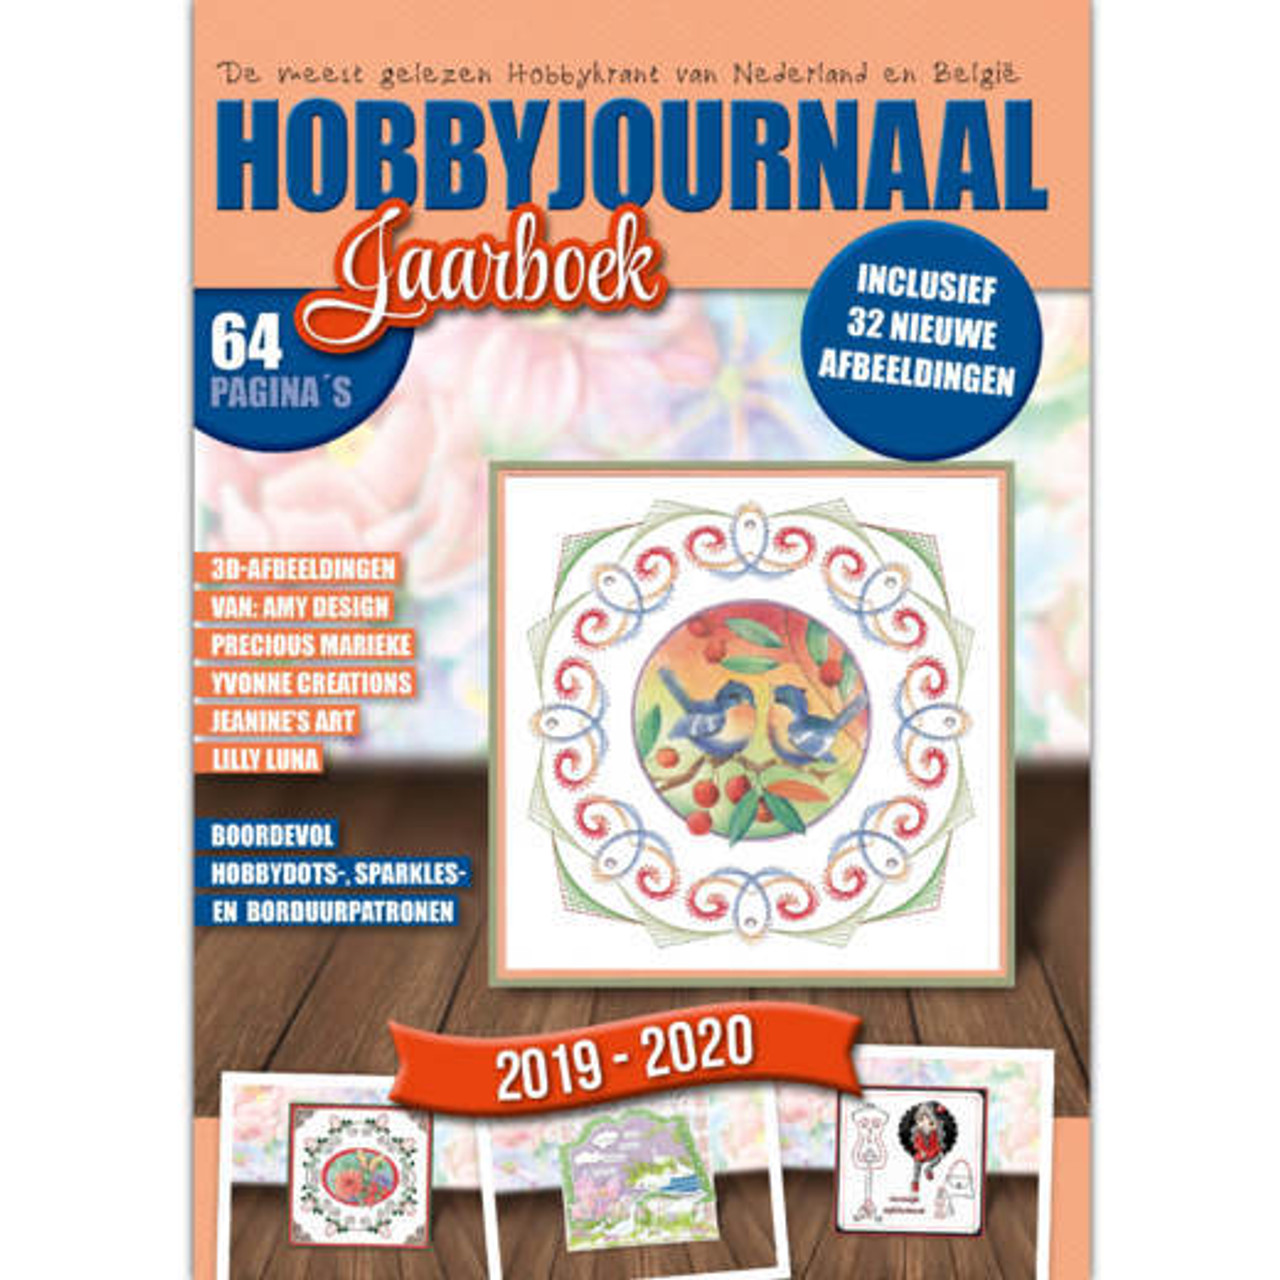 Hobbyjournaal Year Book 2019/2020